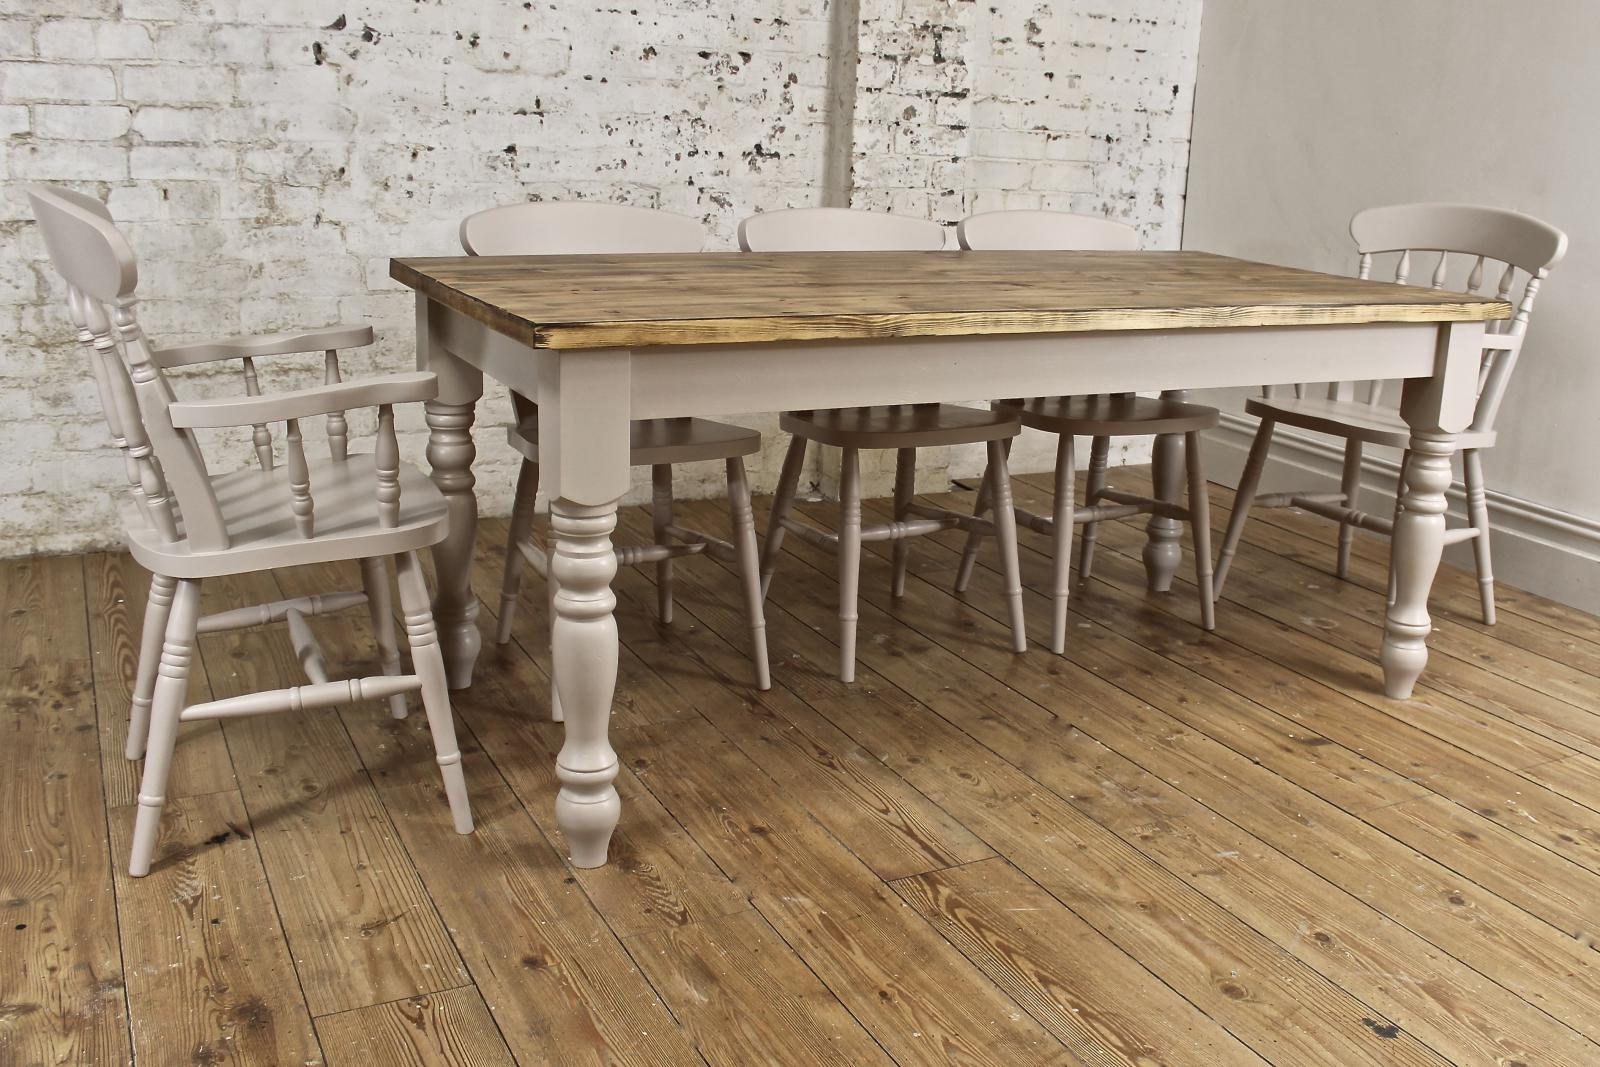 6ft Solid Pine Dining Table Set Chairs Farmhouse Painted